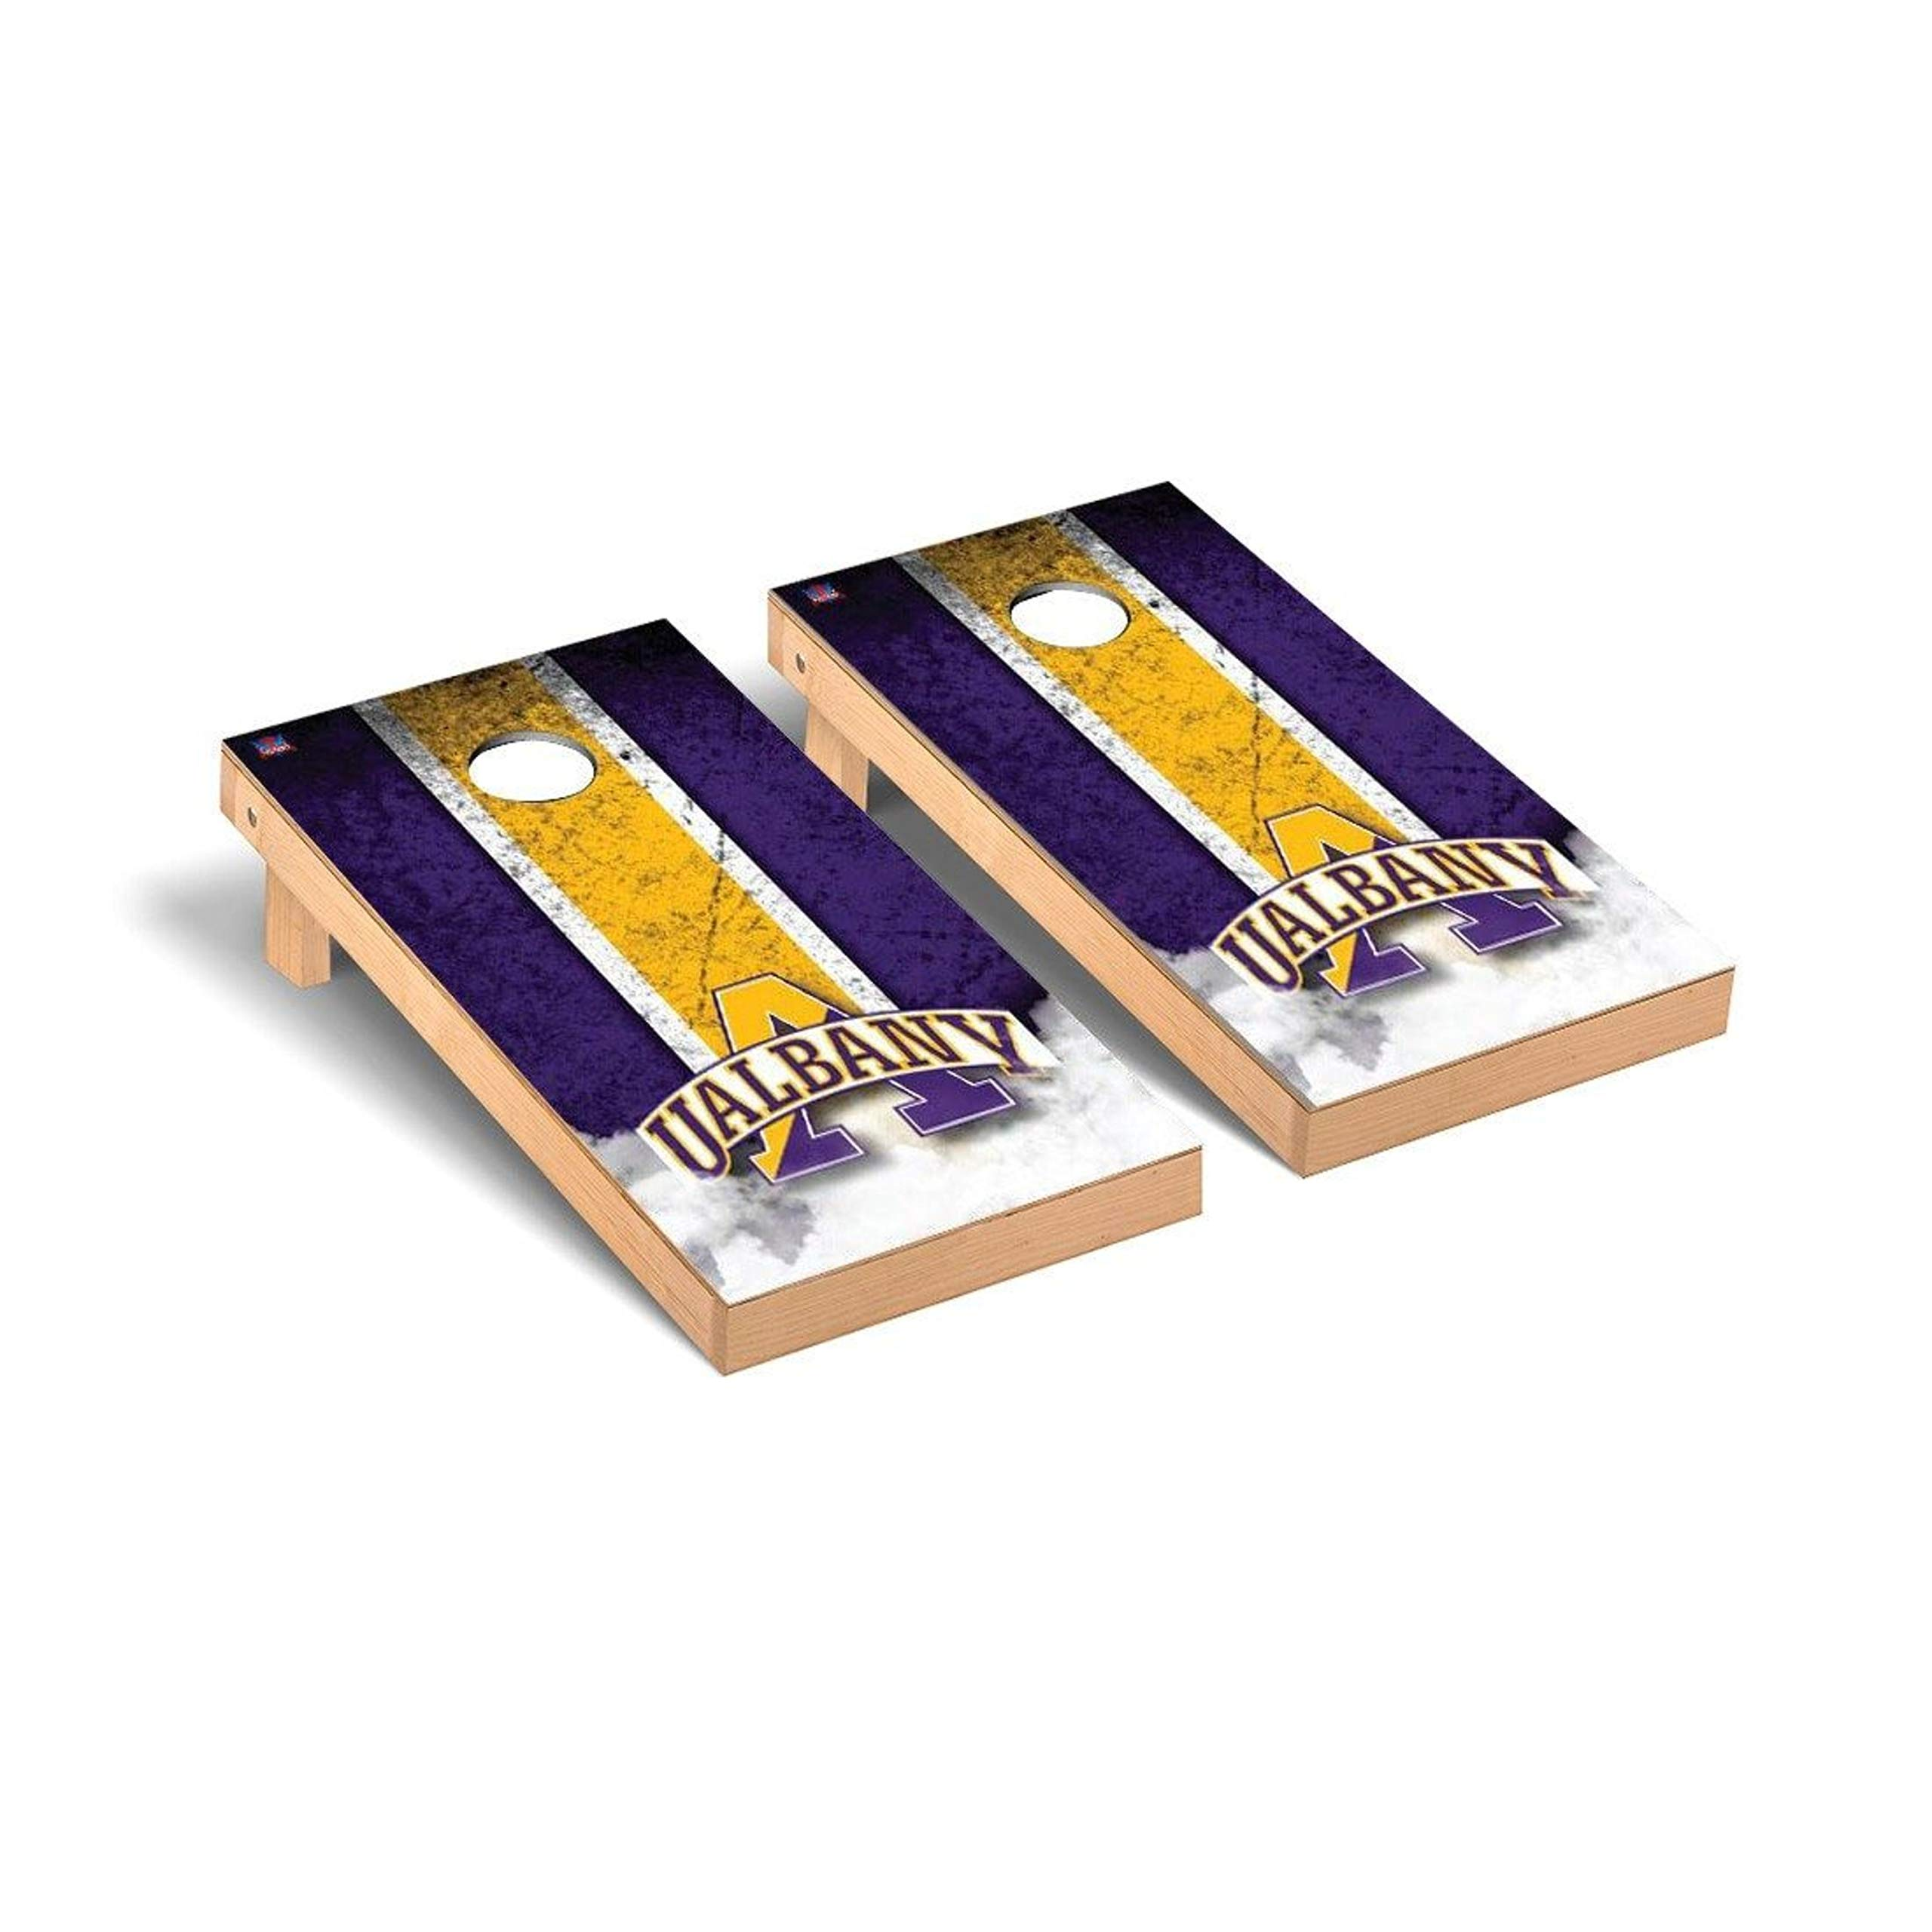 Victory Tailgate Regulation Collegiate NCAA Vintage Series Cornhole Board Set - 2 Boards, 8 Bags - Albany Great Danes